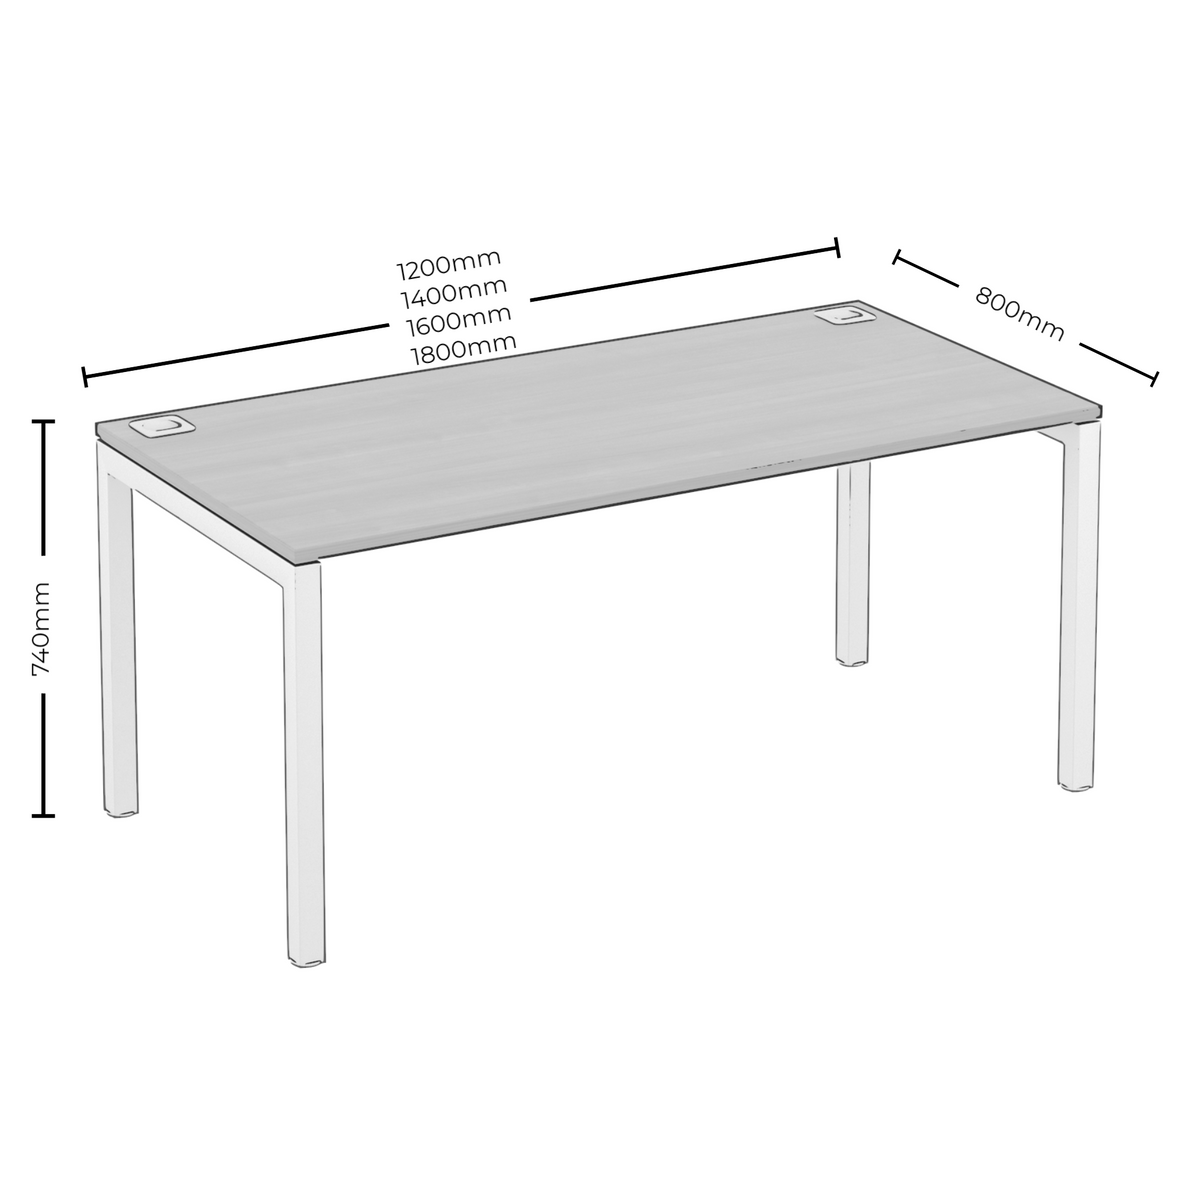 Dimensions for Elite Office Matrix Desk 1200mm